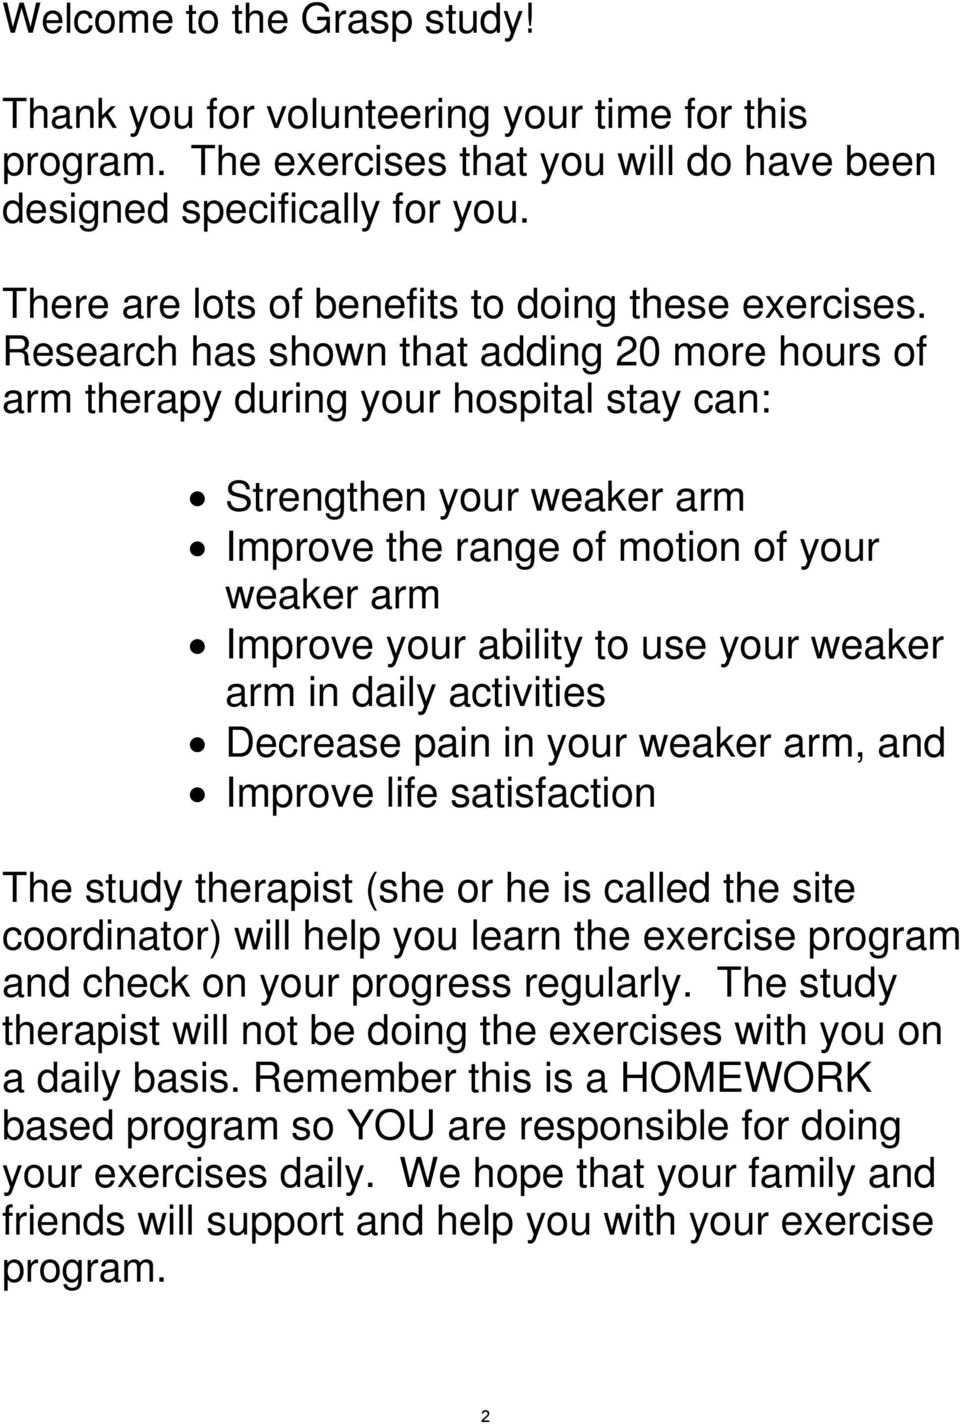 Research has shown that adding 20 more hours of arm therapy during your hospital stay can: Strengthen your weaker arm Improve the range of motion of your weaker arm Improve your ability to use your